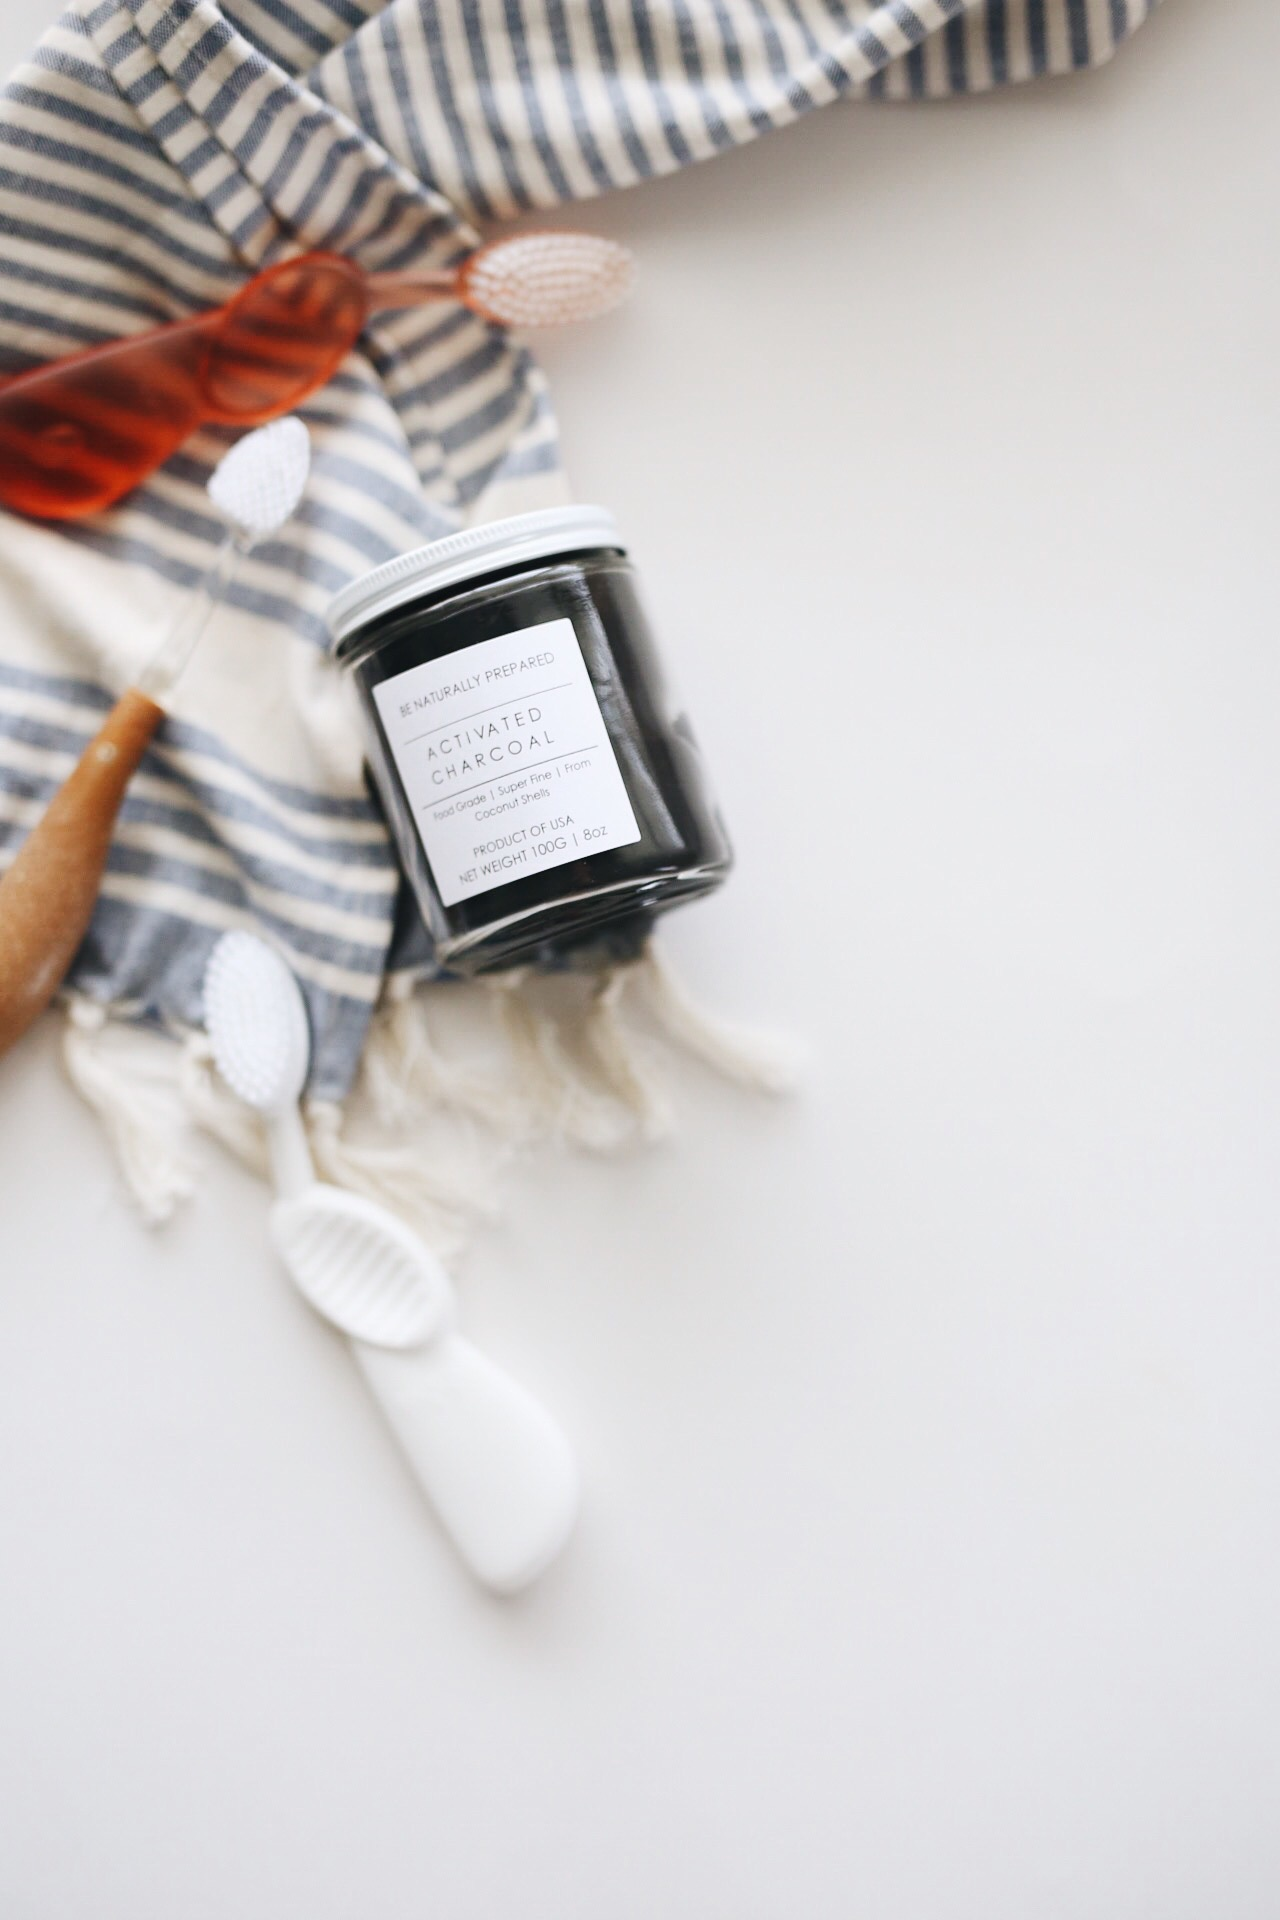 whitening your teeth with activated charcoal | elanaloo.com